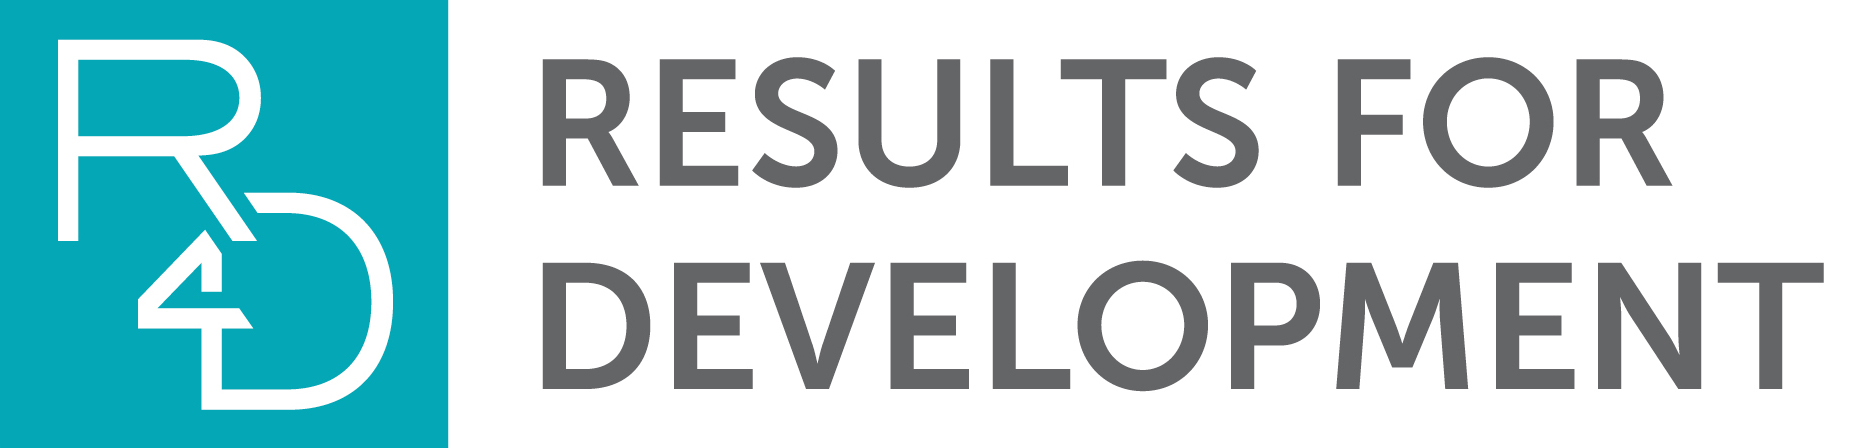 Results for Development (R4D)